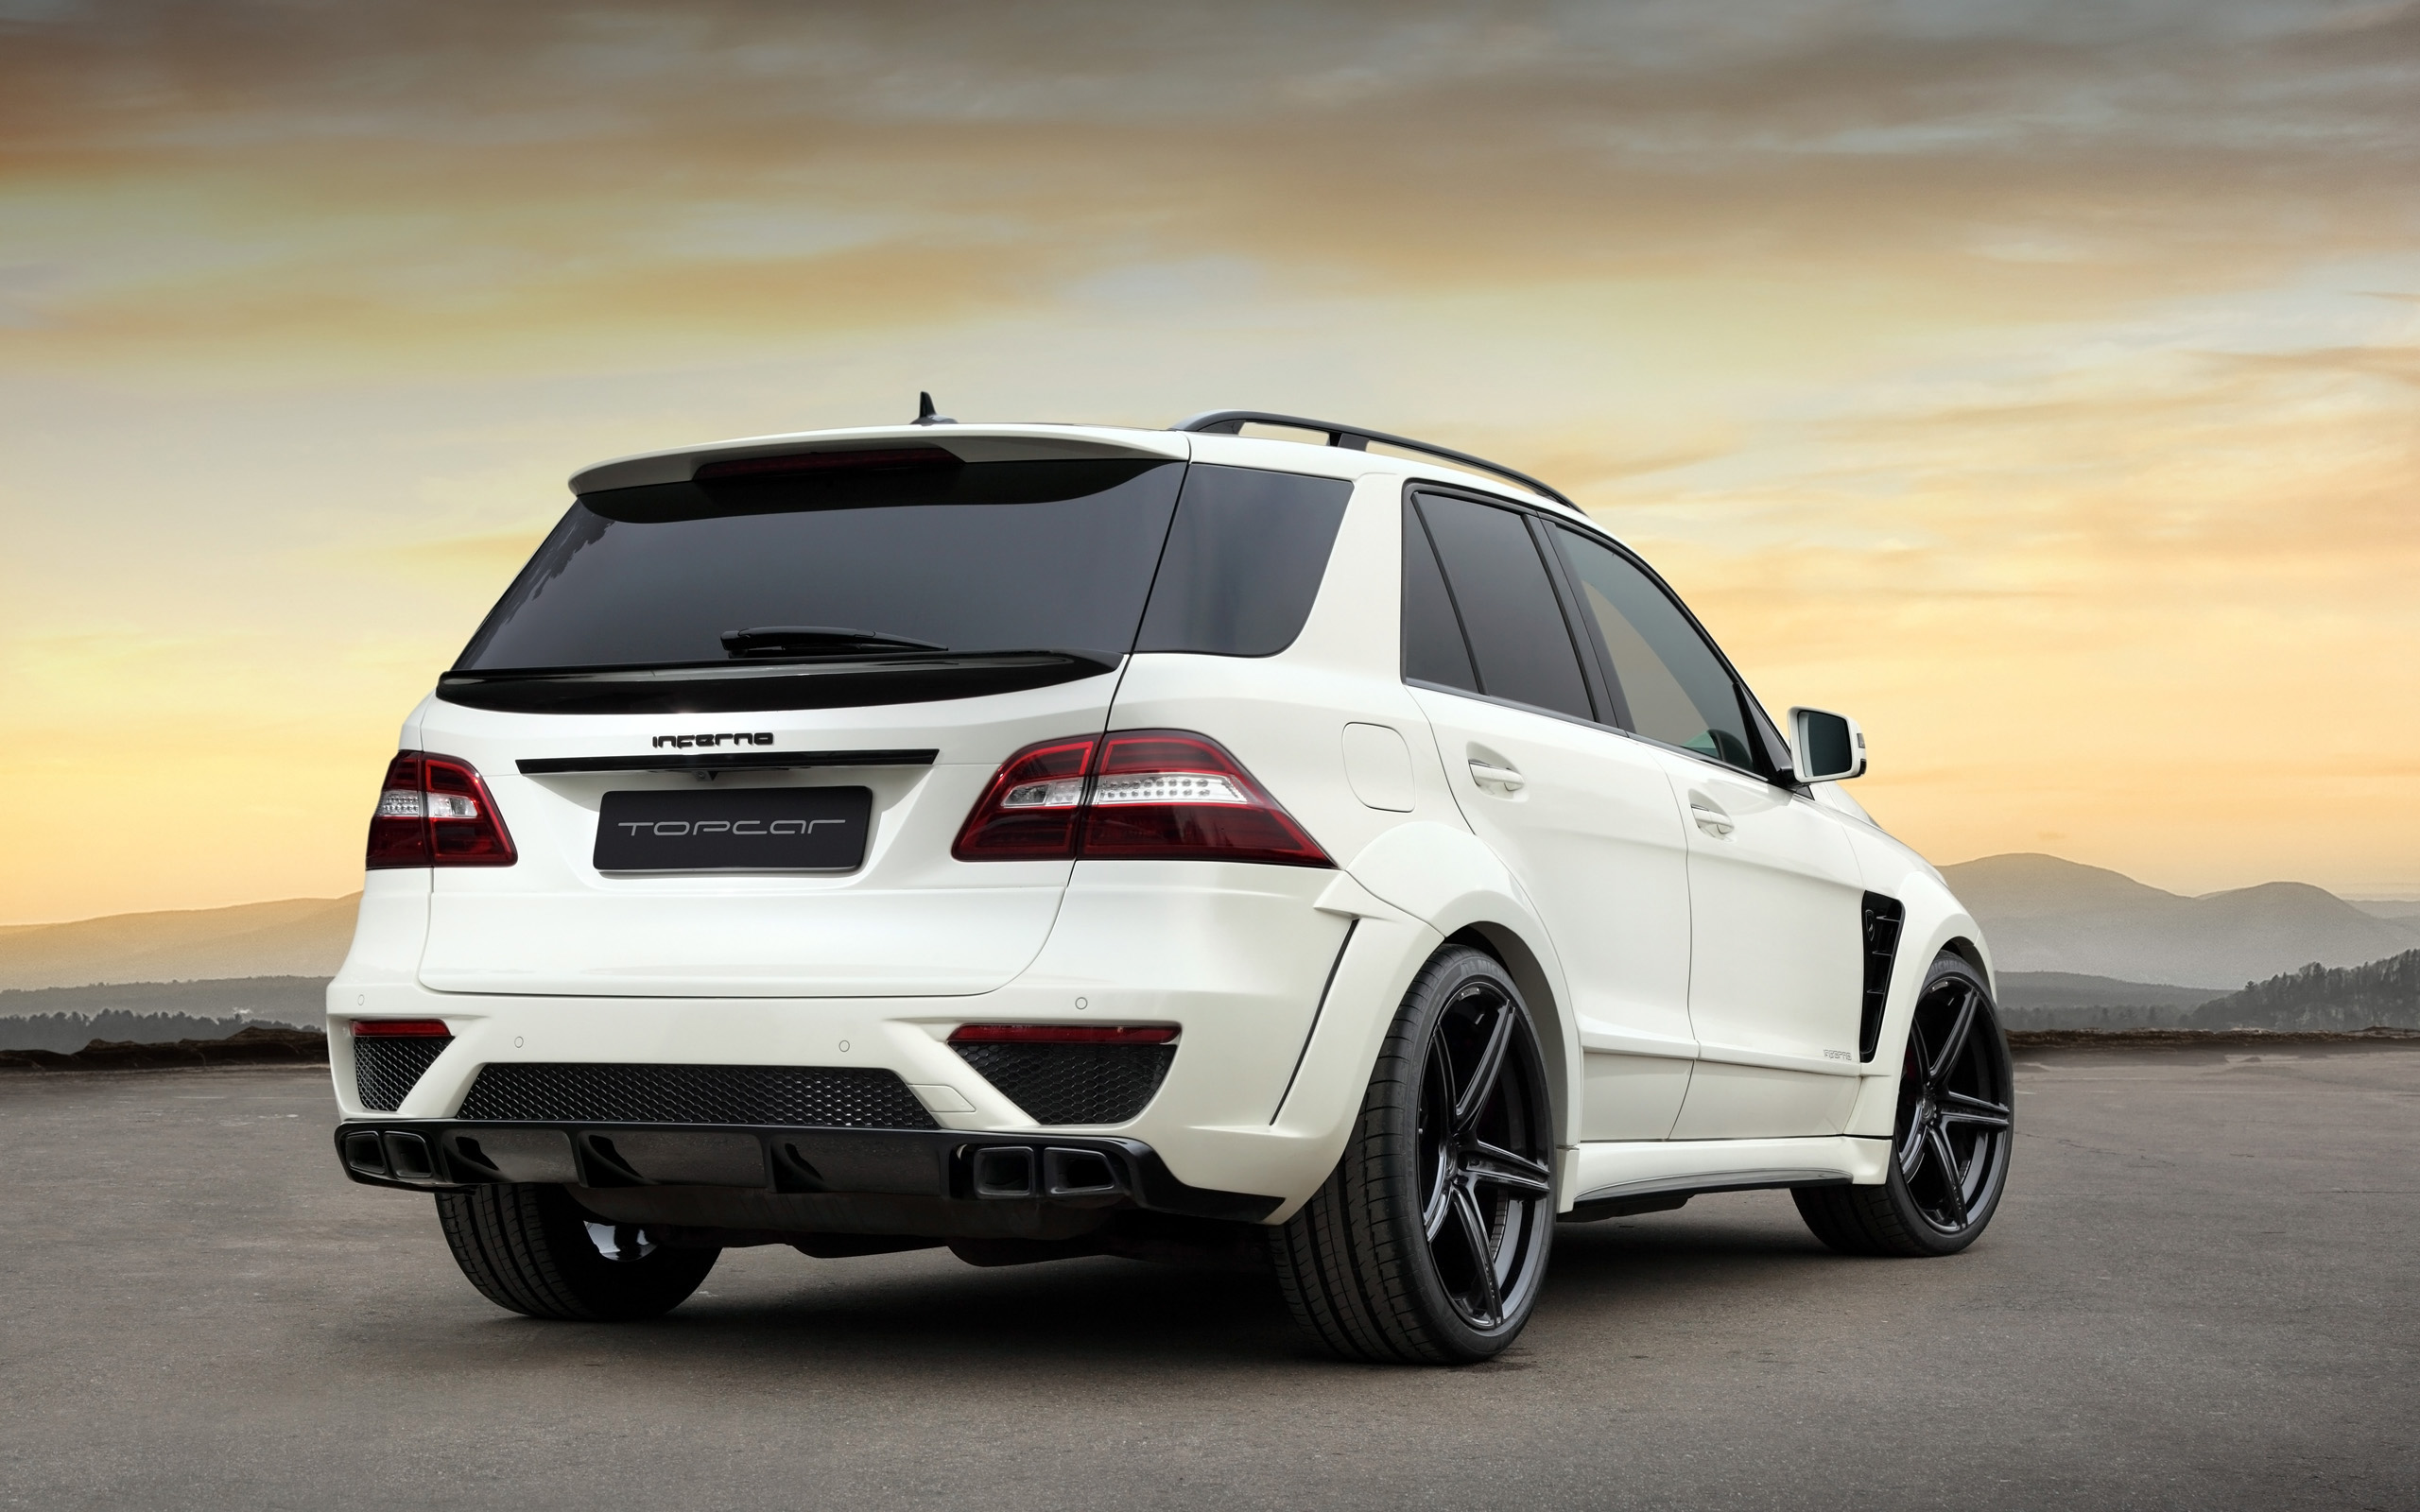 2013 topcar mercedes benz ml 63 amg inferno suv tuning f. Black Bedroom Furniture Sets. Home Design Ideas